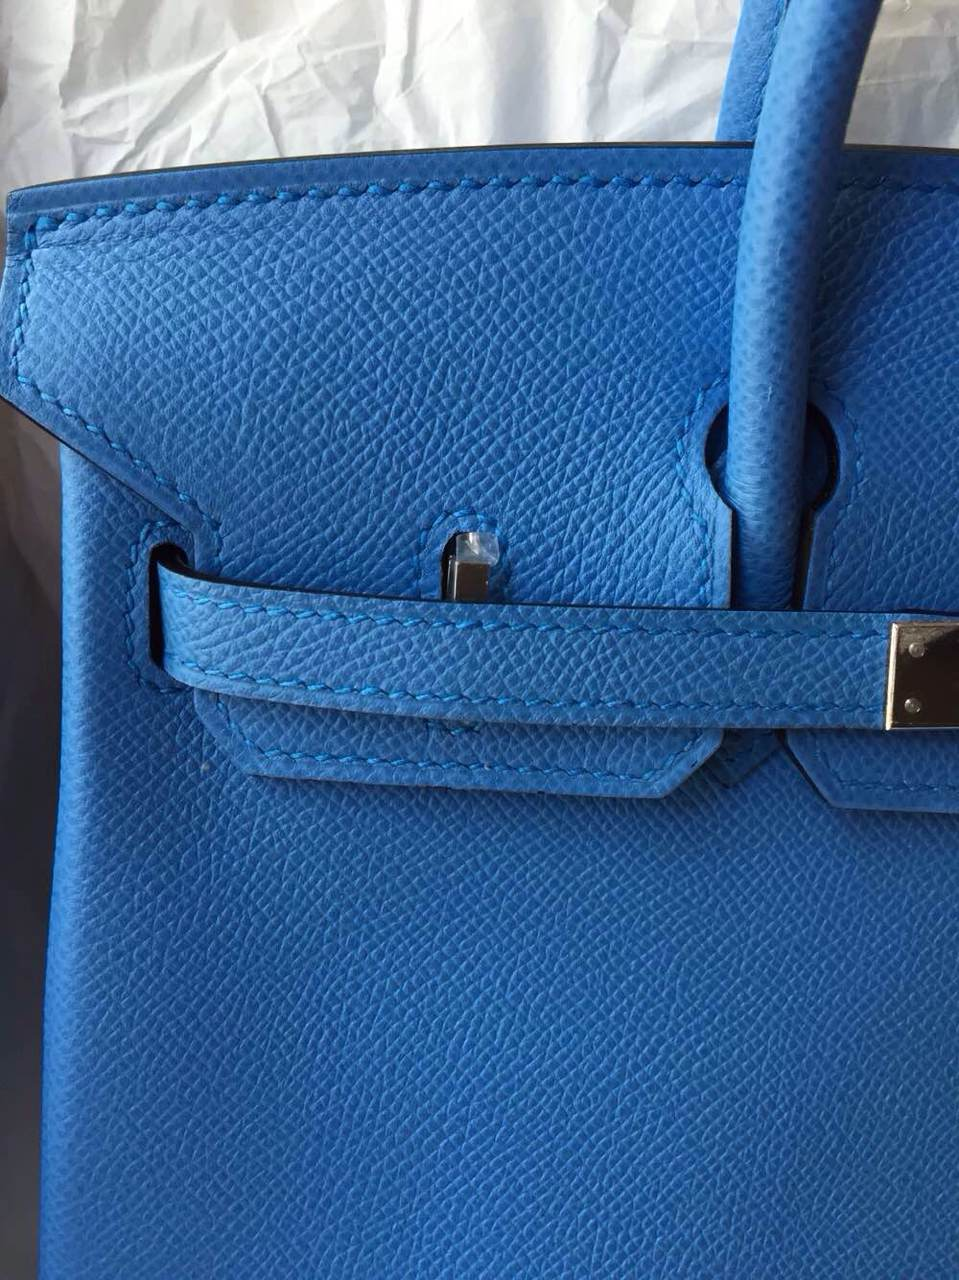 Hand Stitching Hermes Birkin30 2T Blue Paradise Epsom Calfskin Leather Tote Bag